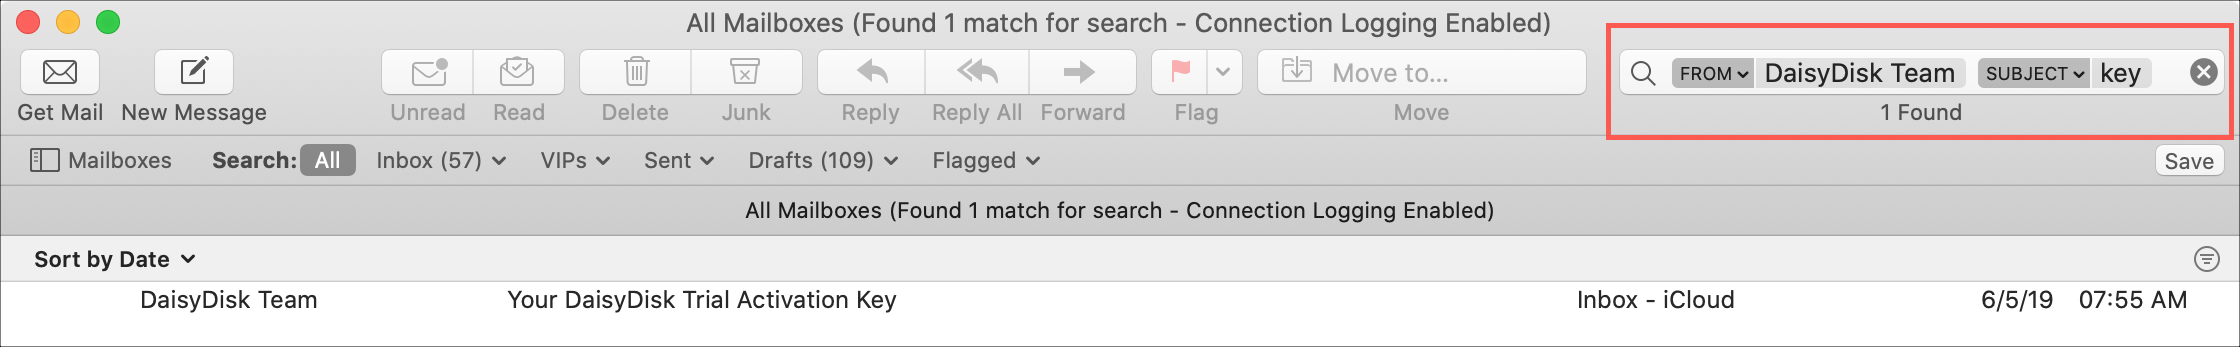 Mail Search Filters From Subject Key